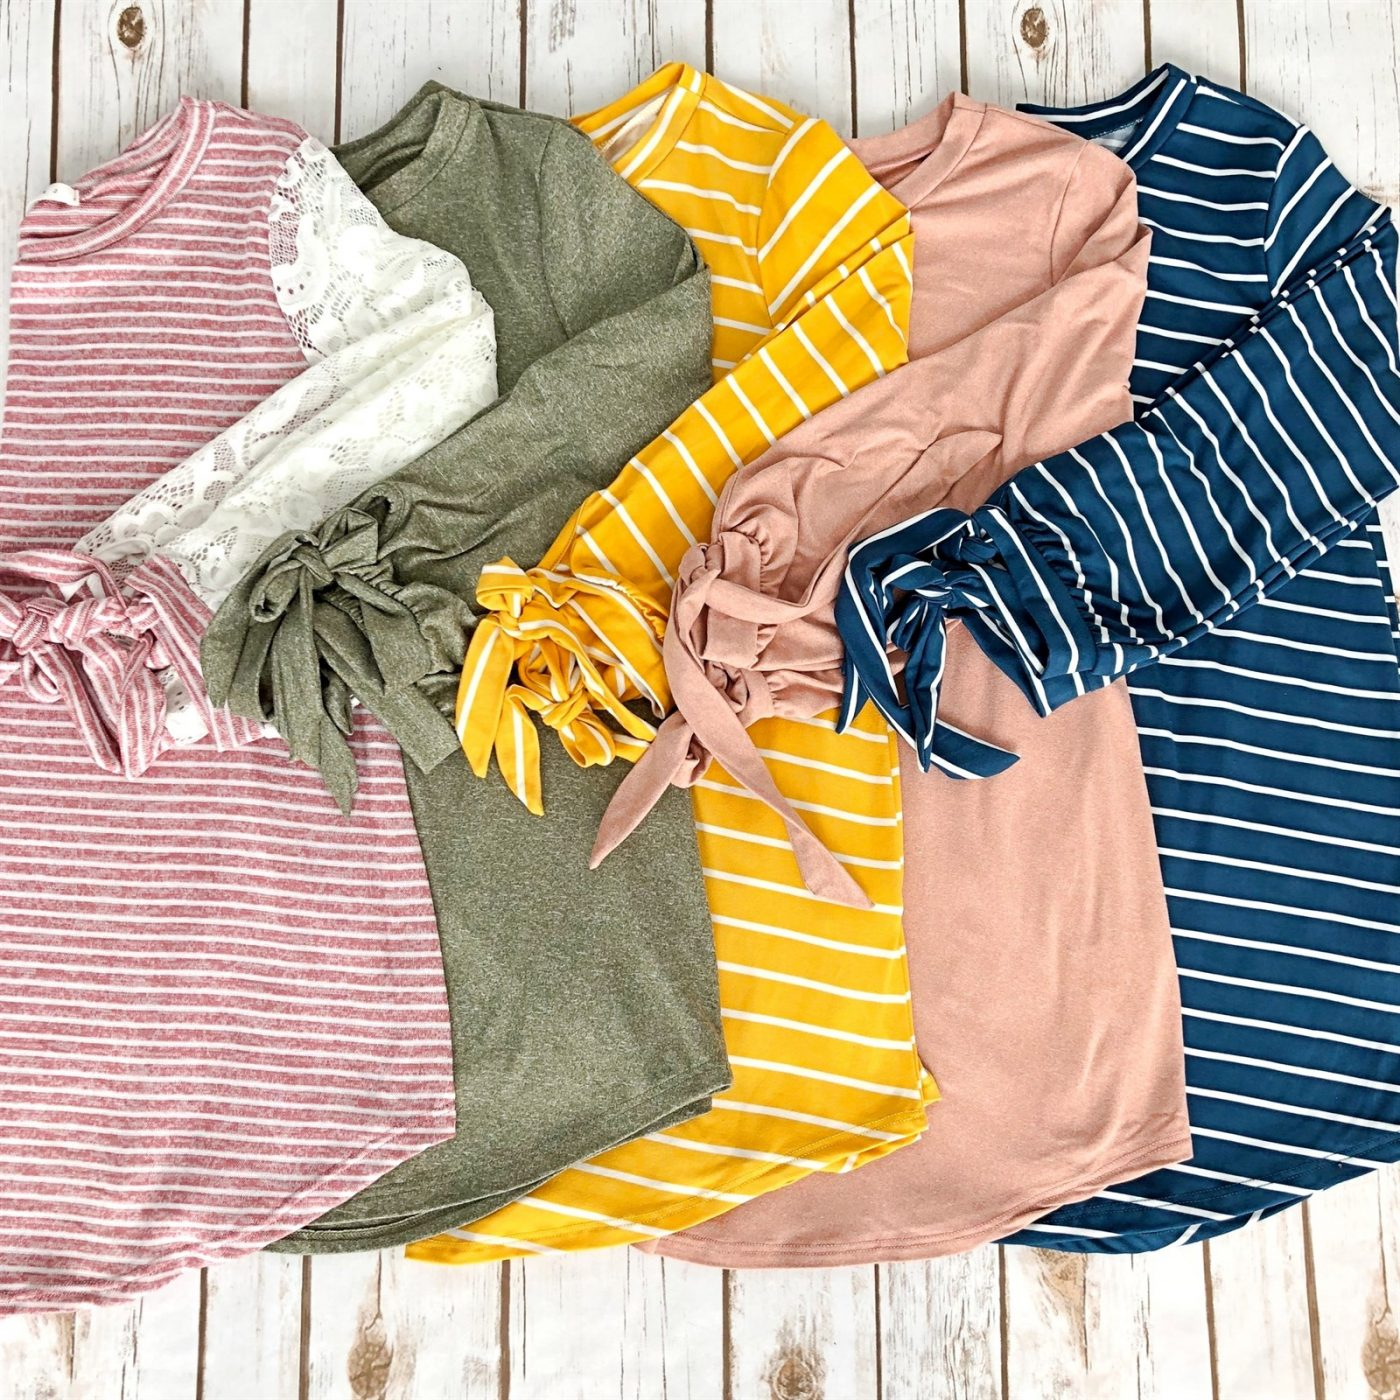 Was $45.99 - Now $14.99 - Tied Tunic Collection   Free Shipping (10/12 to 10/14)